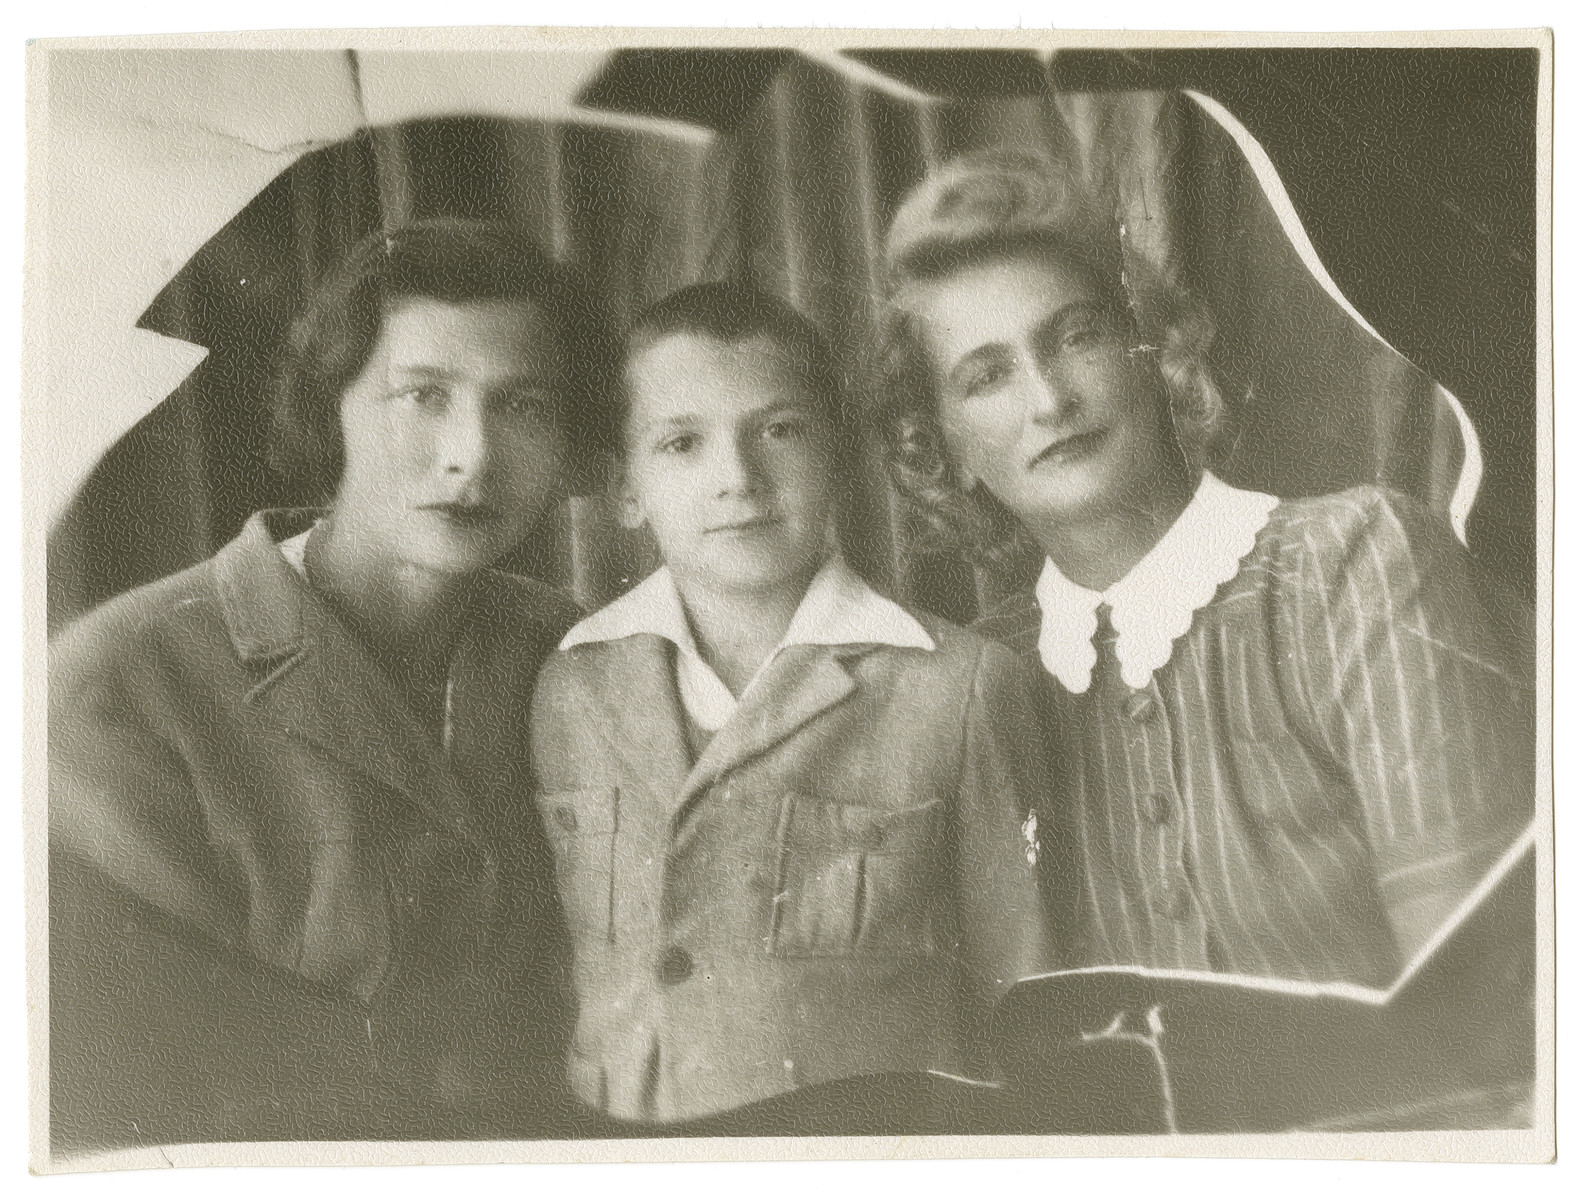 Portrait of Deborah-Miriam Dobrysh, her son Avi, and her sister-in-law Ilse Reisberg, taken during their evacuation to central Asia.